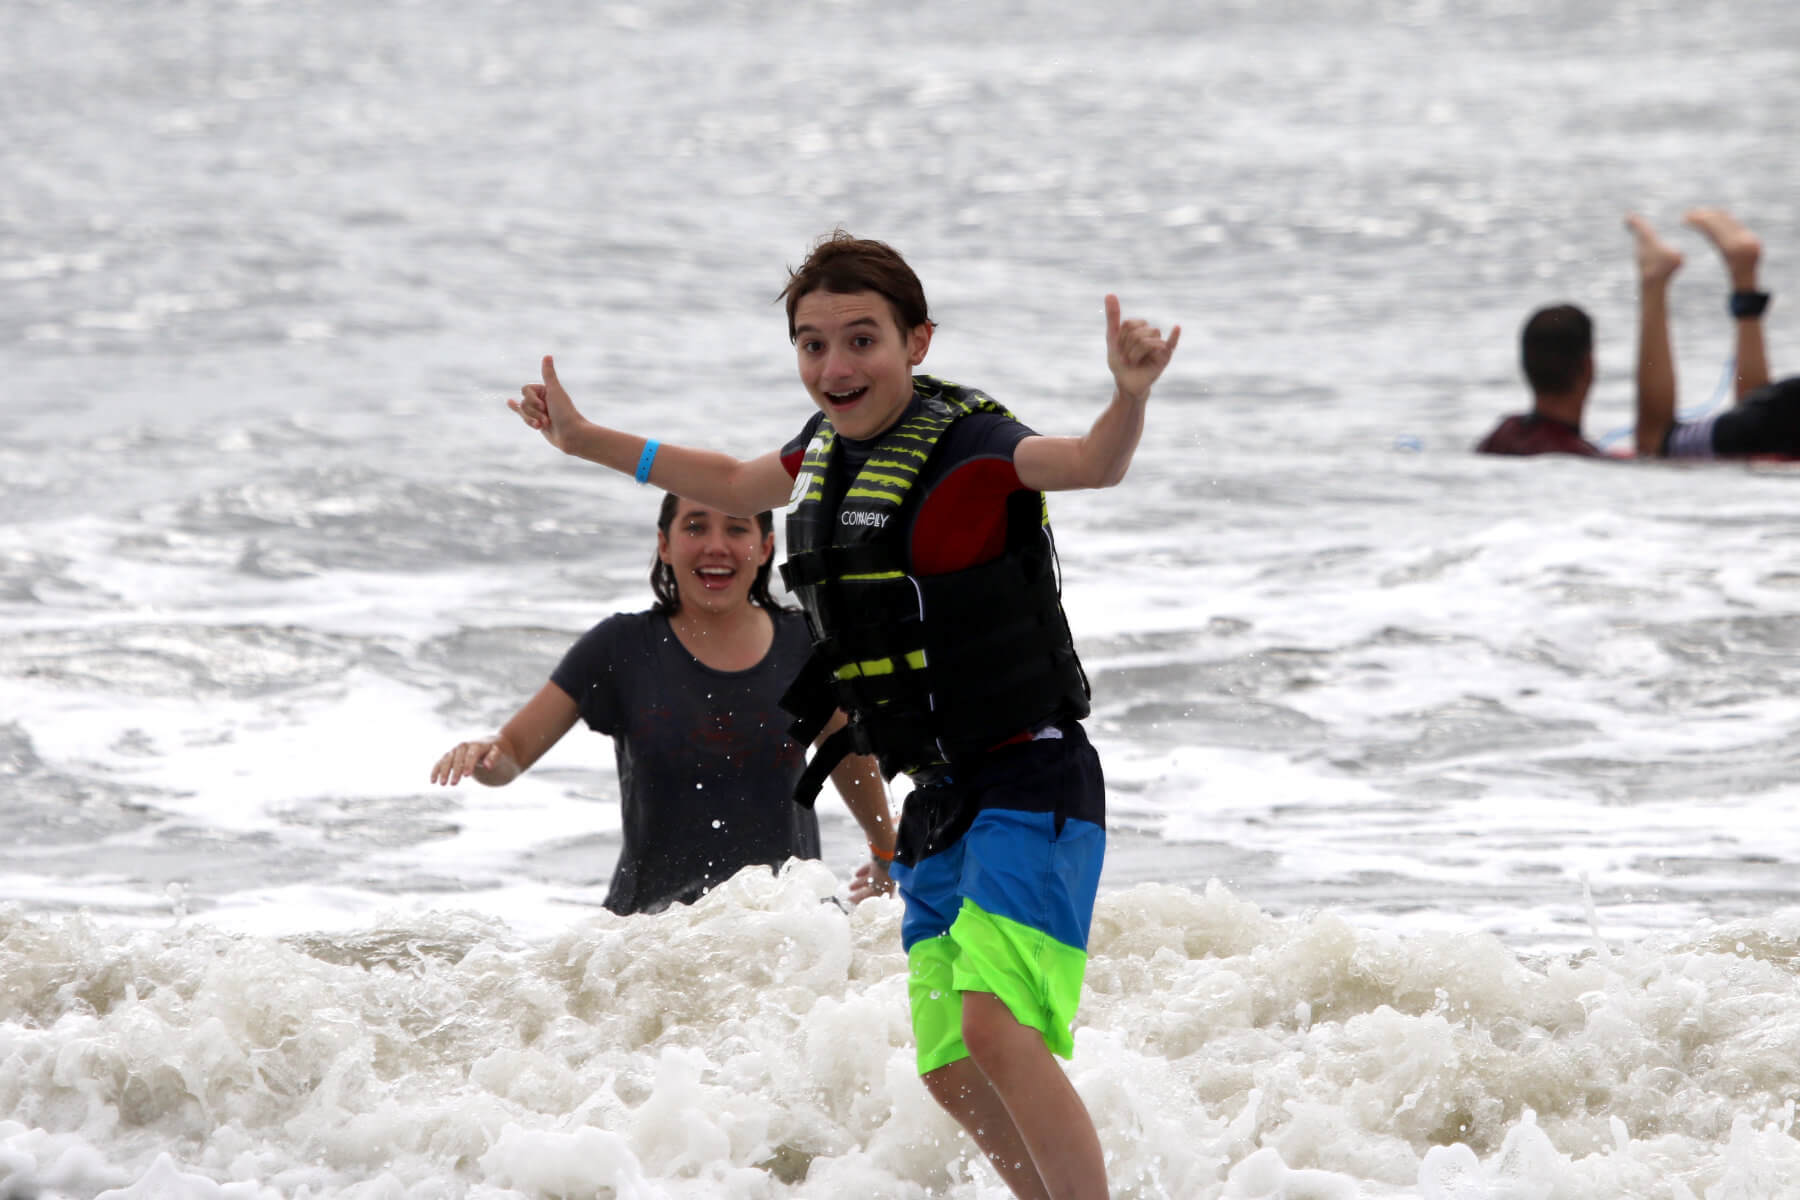 Heal Autism Now 2019 Surf Camp Surfing Thumbs Up